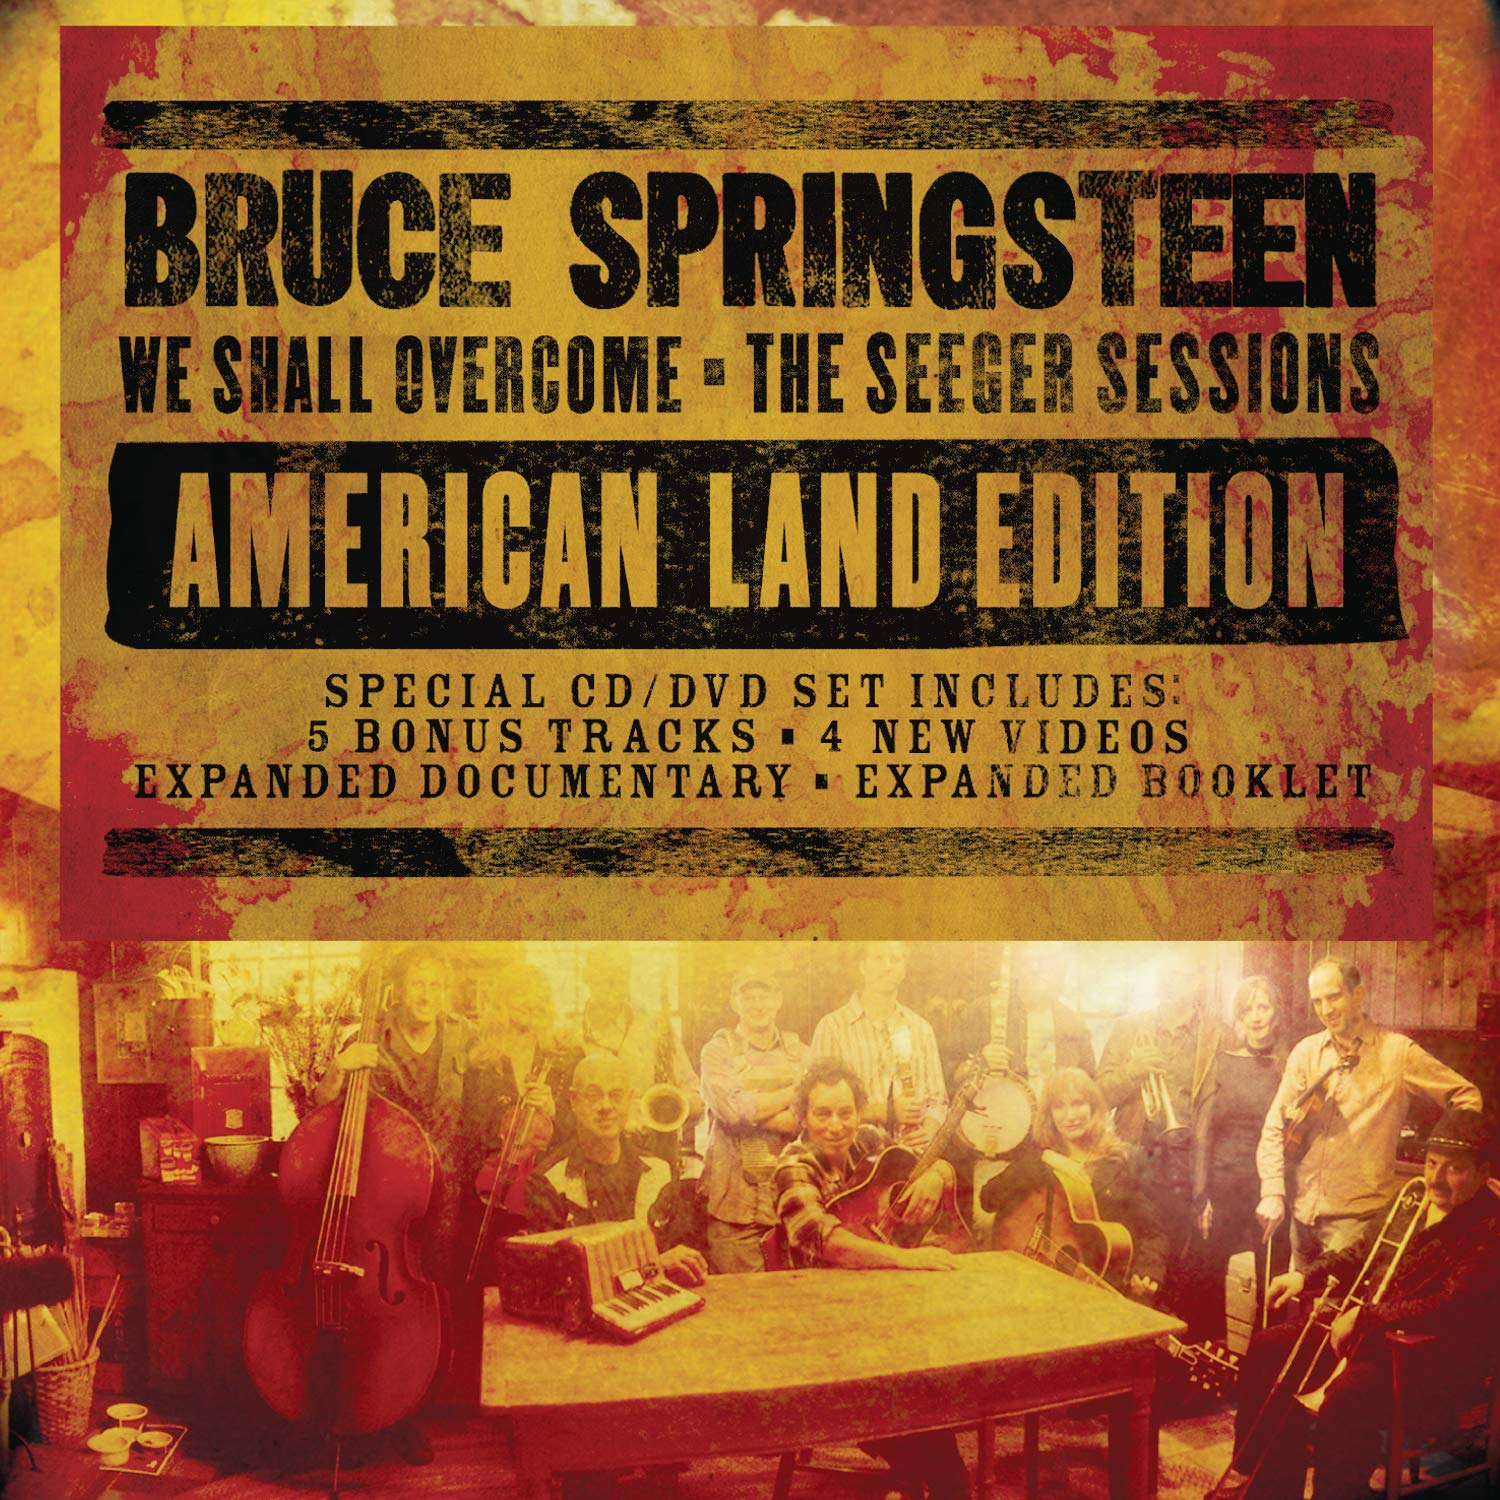 We Shall Overcome: The Seeger Sessions (American Land Edition) (CD/DVD) by Legacy